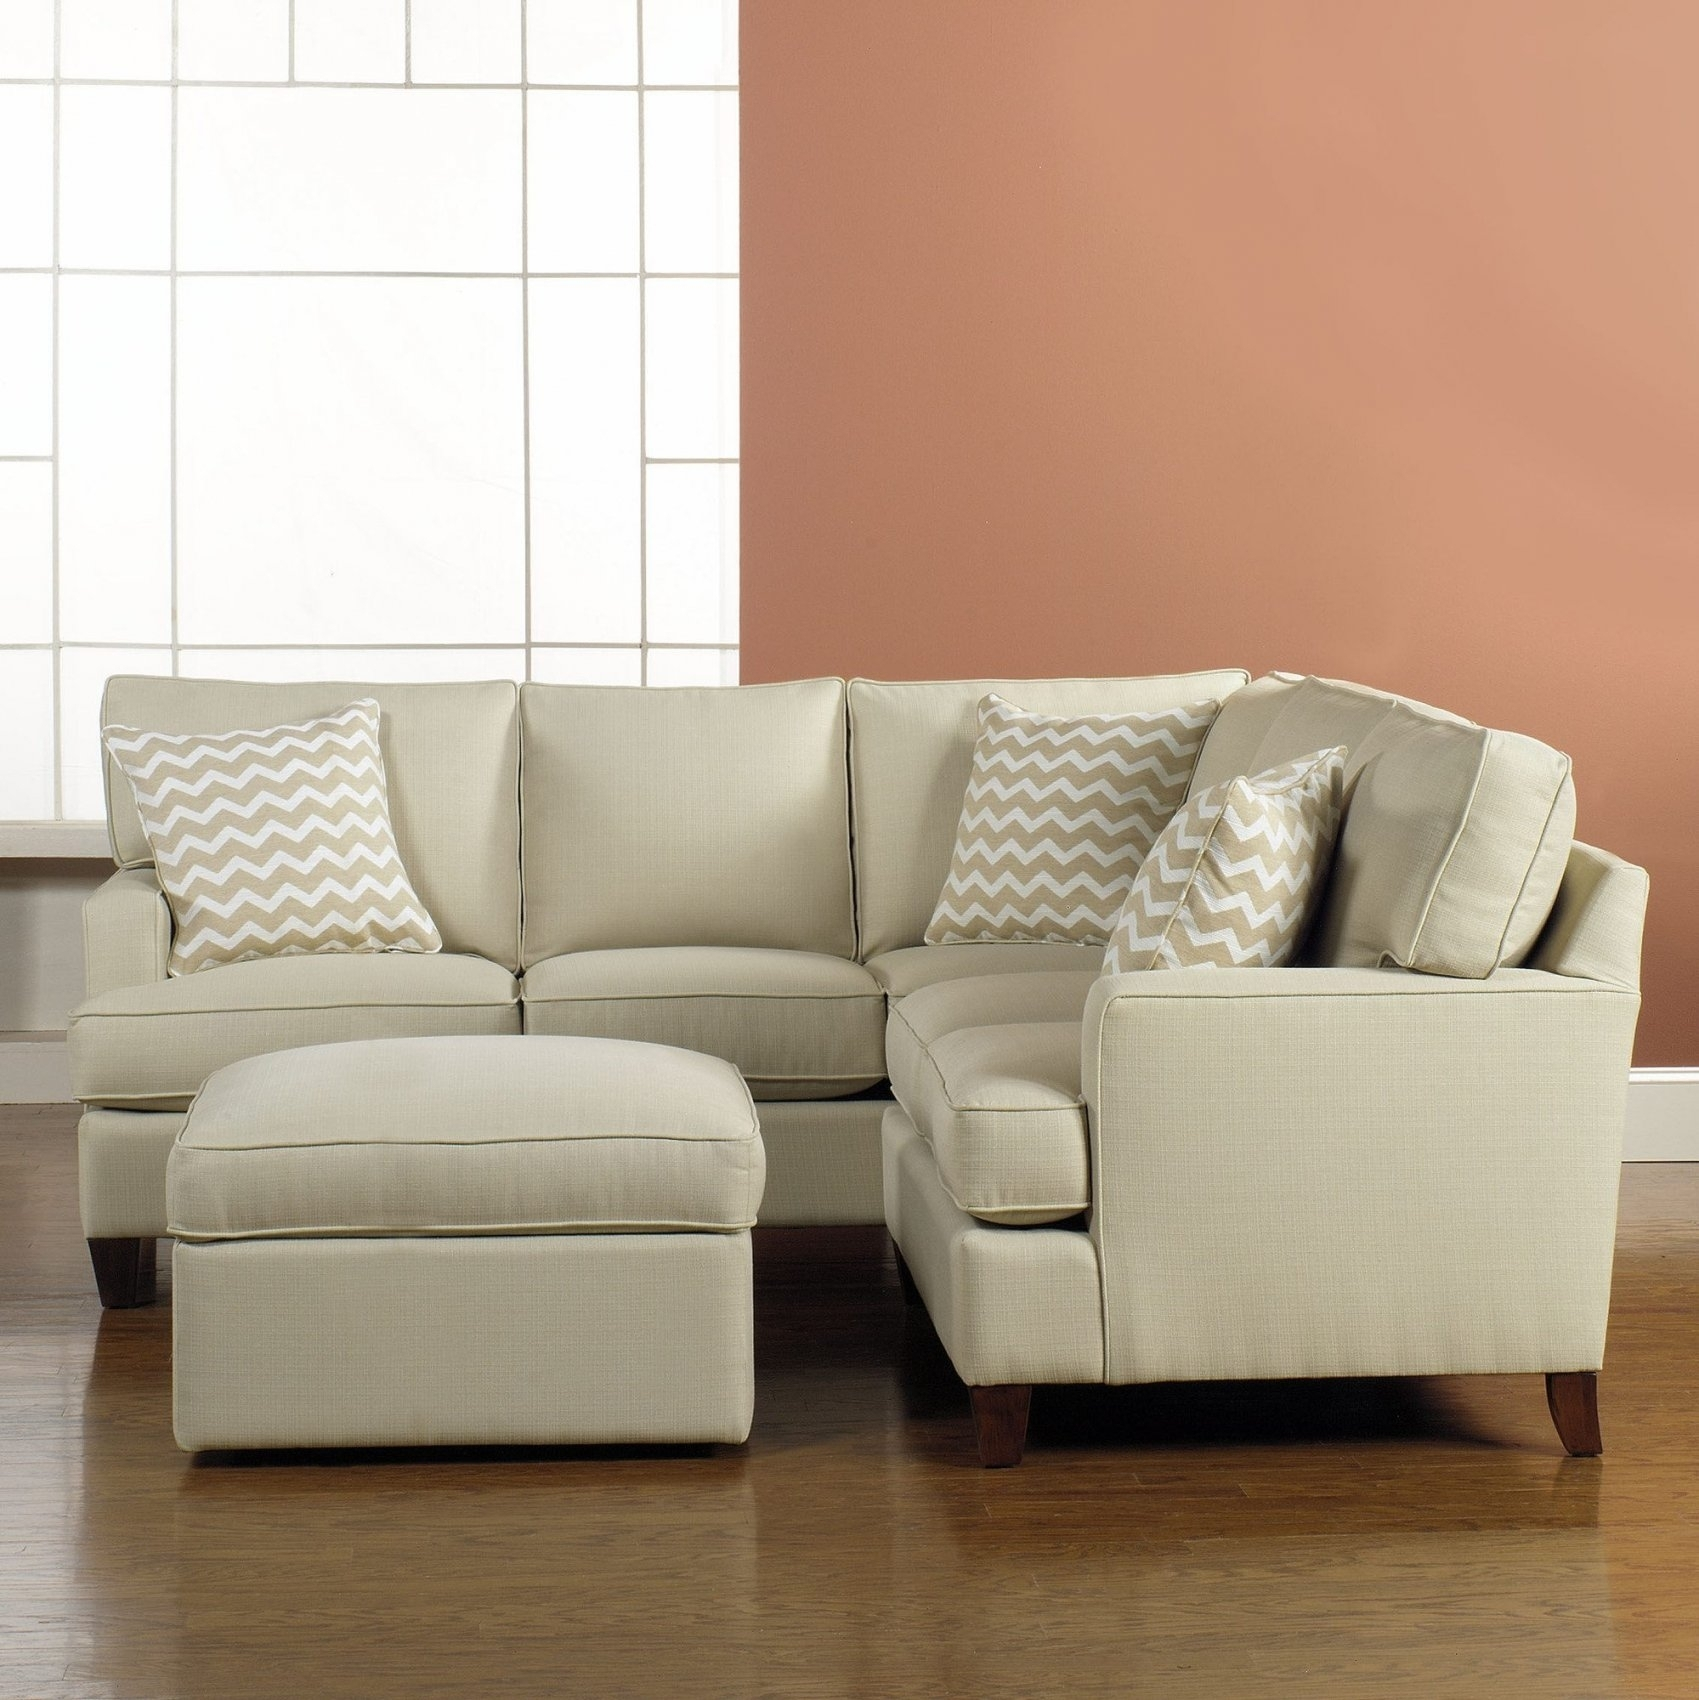 10 Best Collection of Narrow Spaces Sectional Sofas | Sofa ...